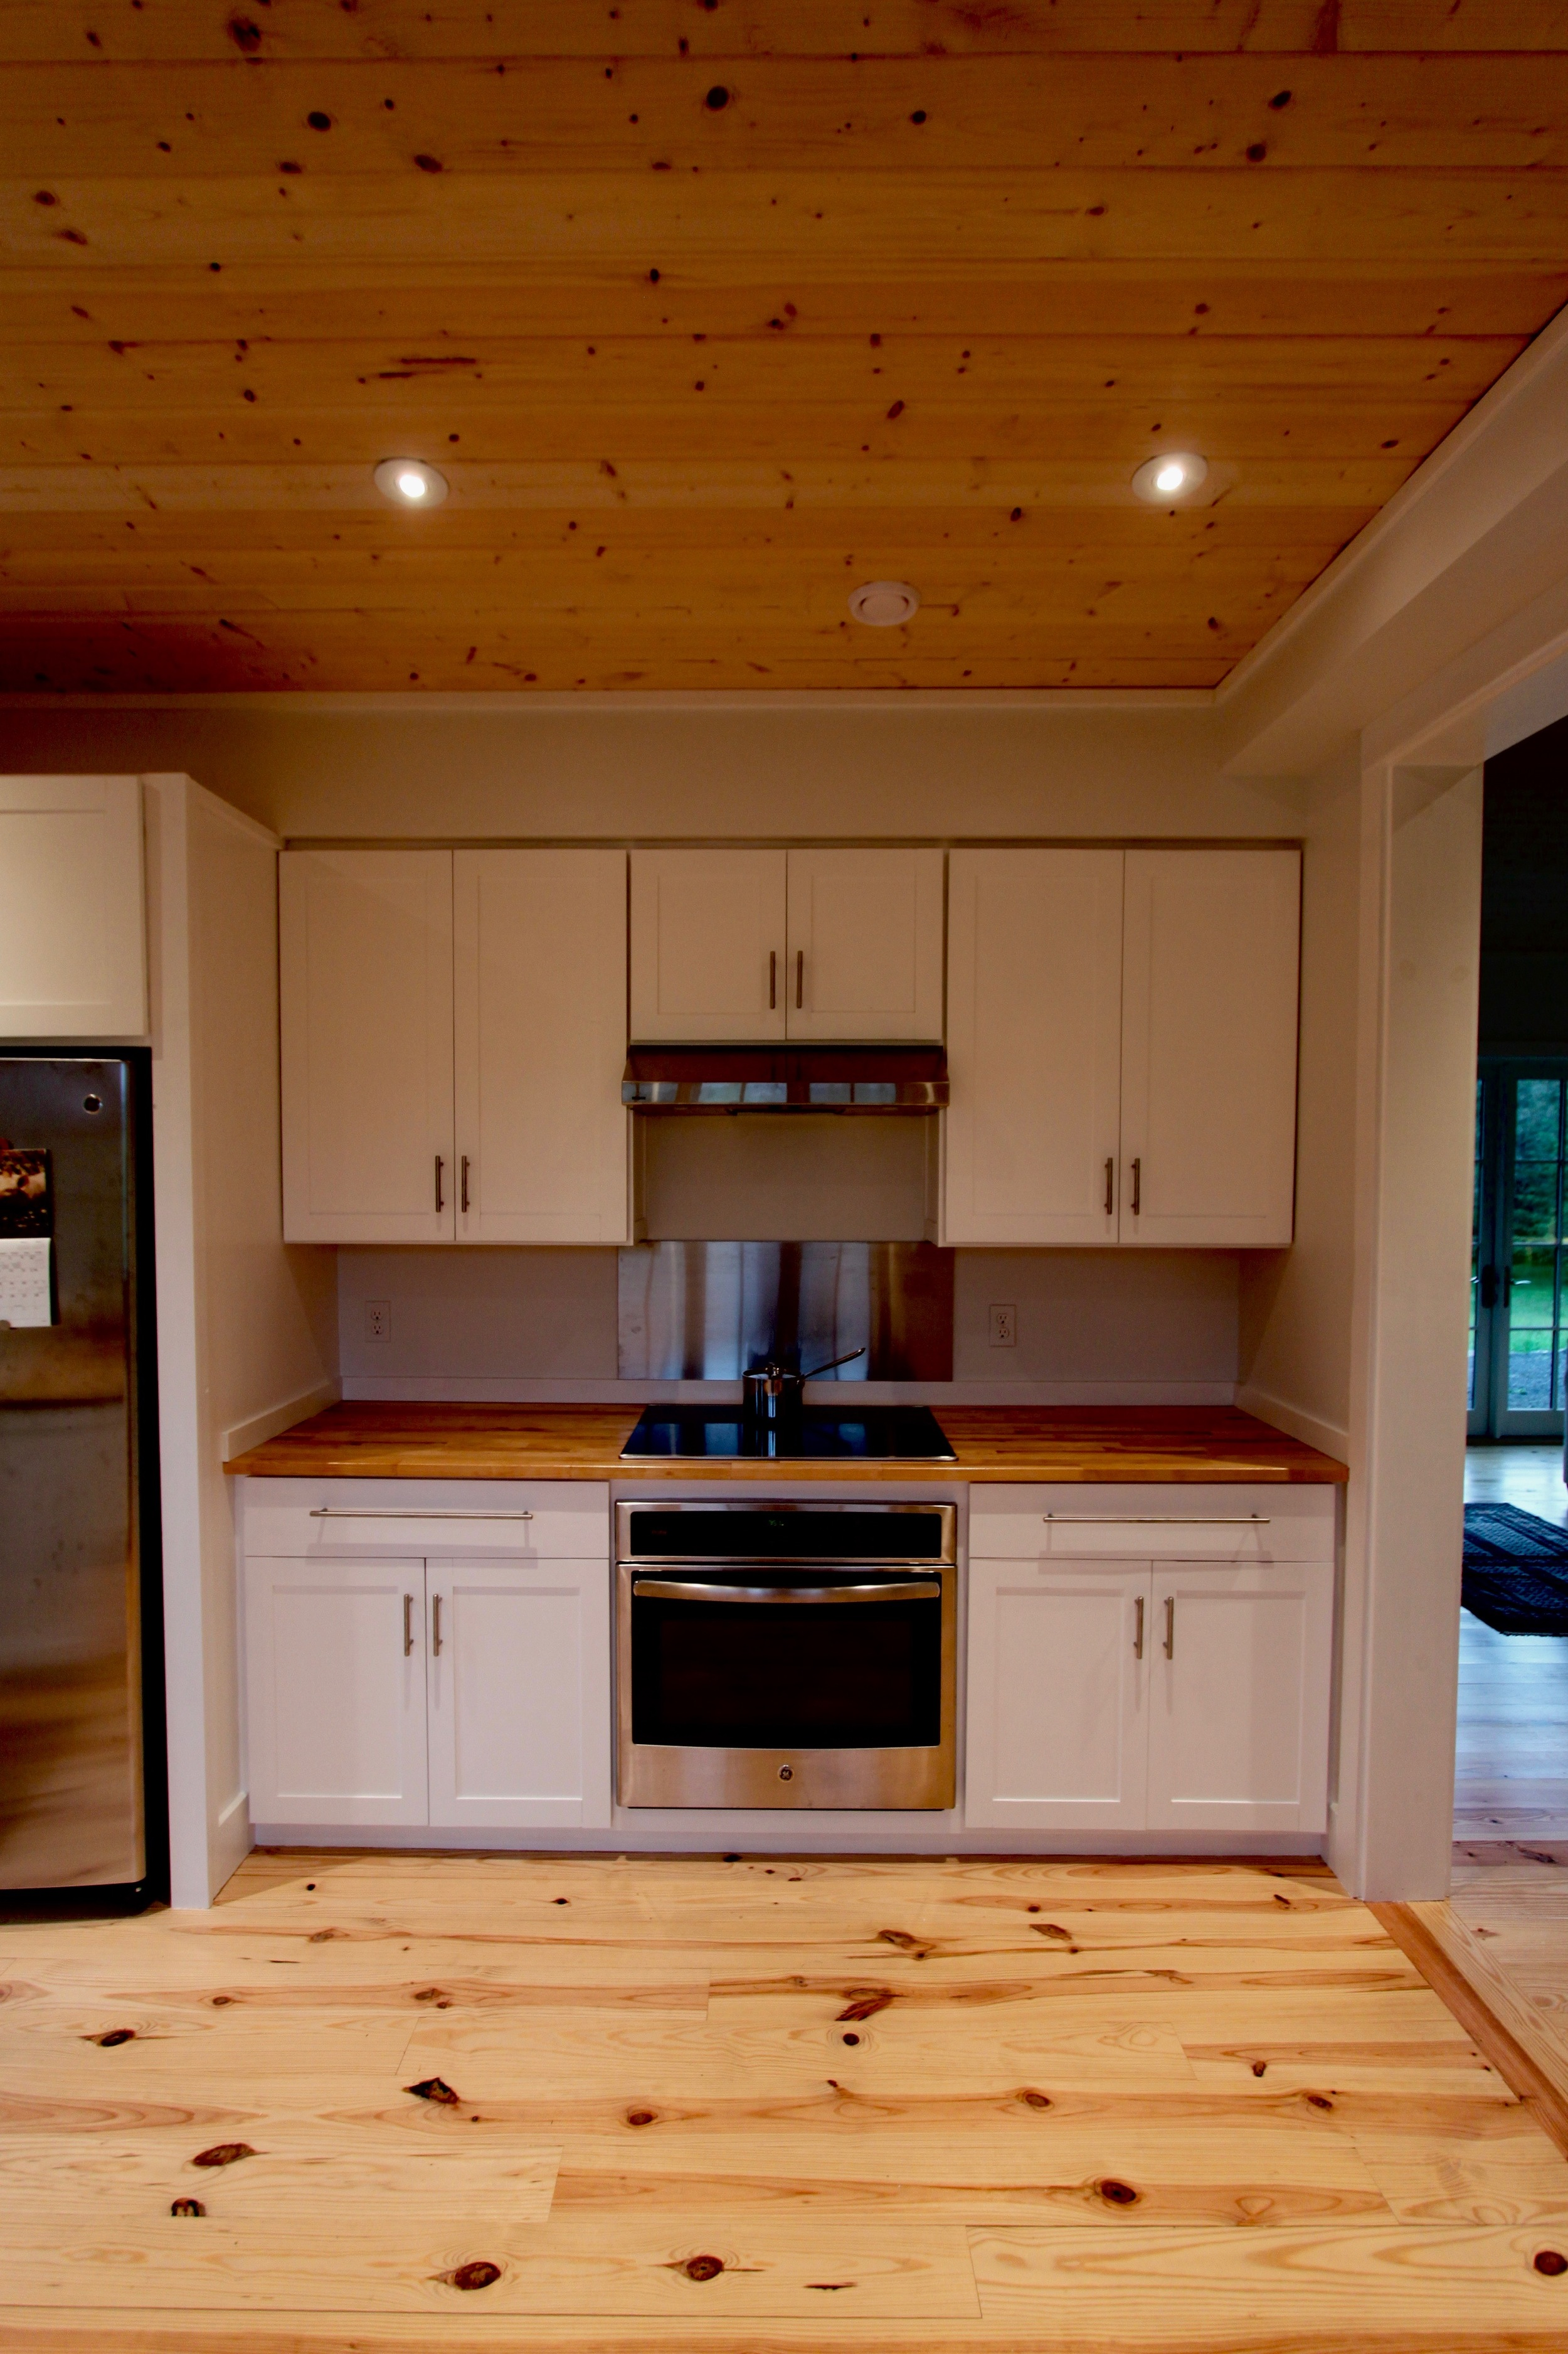 Built-in appliances permit customization with cabinetry. (GE Profile)